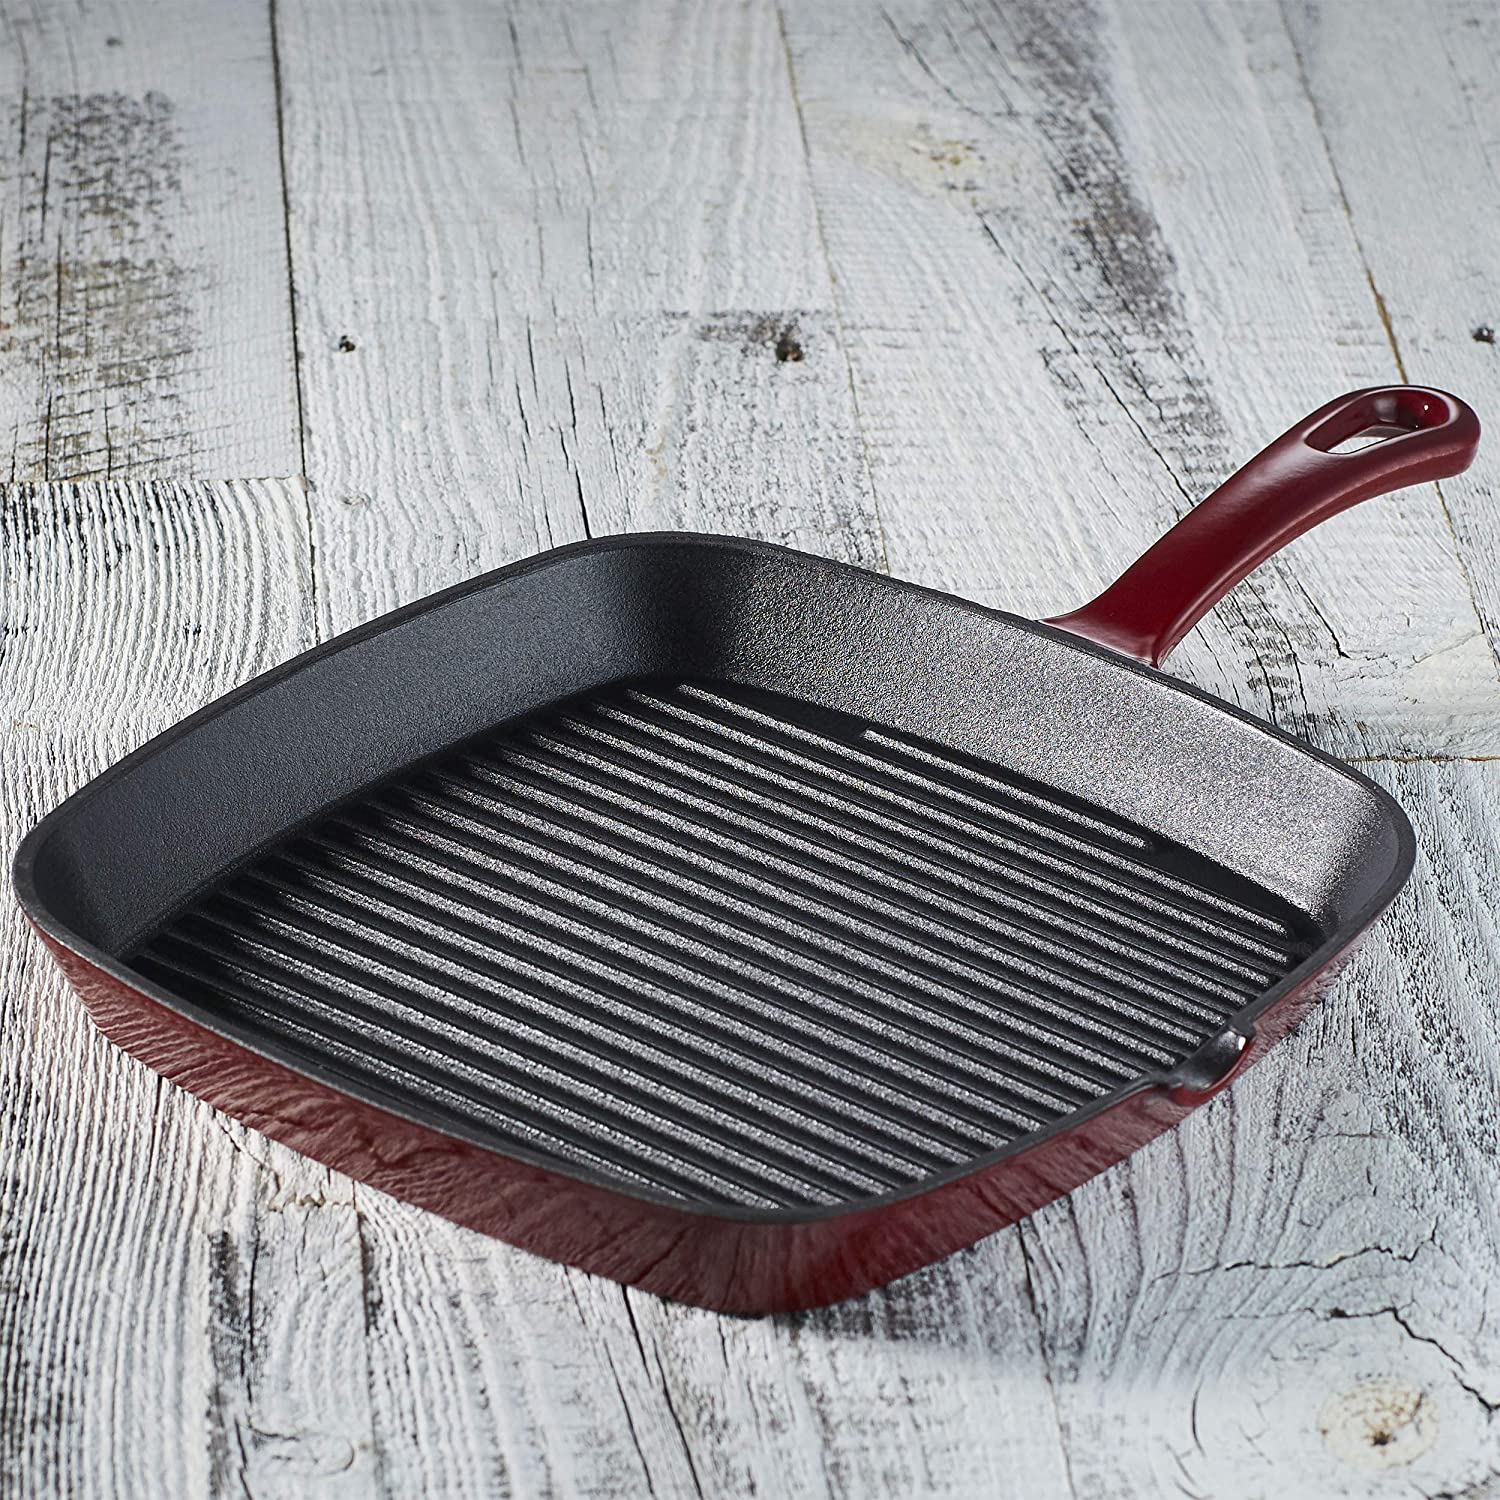 Cuisinart CI30-23CR Chef's Classic Enameled Cast Iron 9-1/4-Inch Square Grill Pan, Cardinal Red CI30-23-PARENT